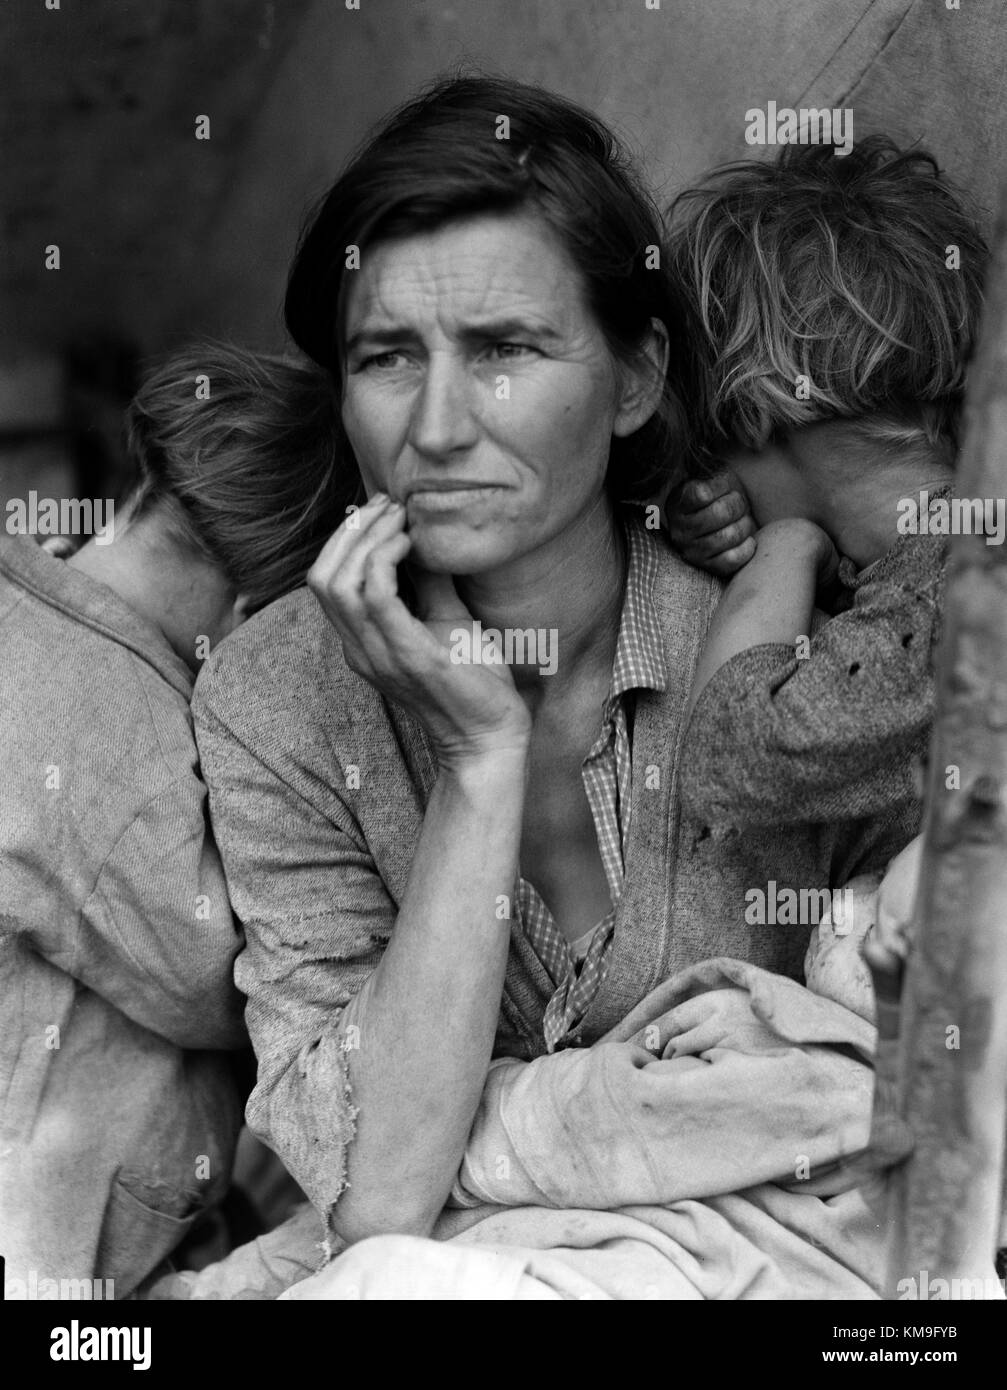 Dorothea Lange's famous portrait of Migrant Mother depicting a destitute family of  pea pickers California, - Stock Image